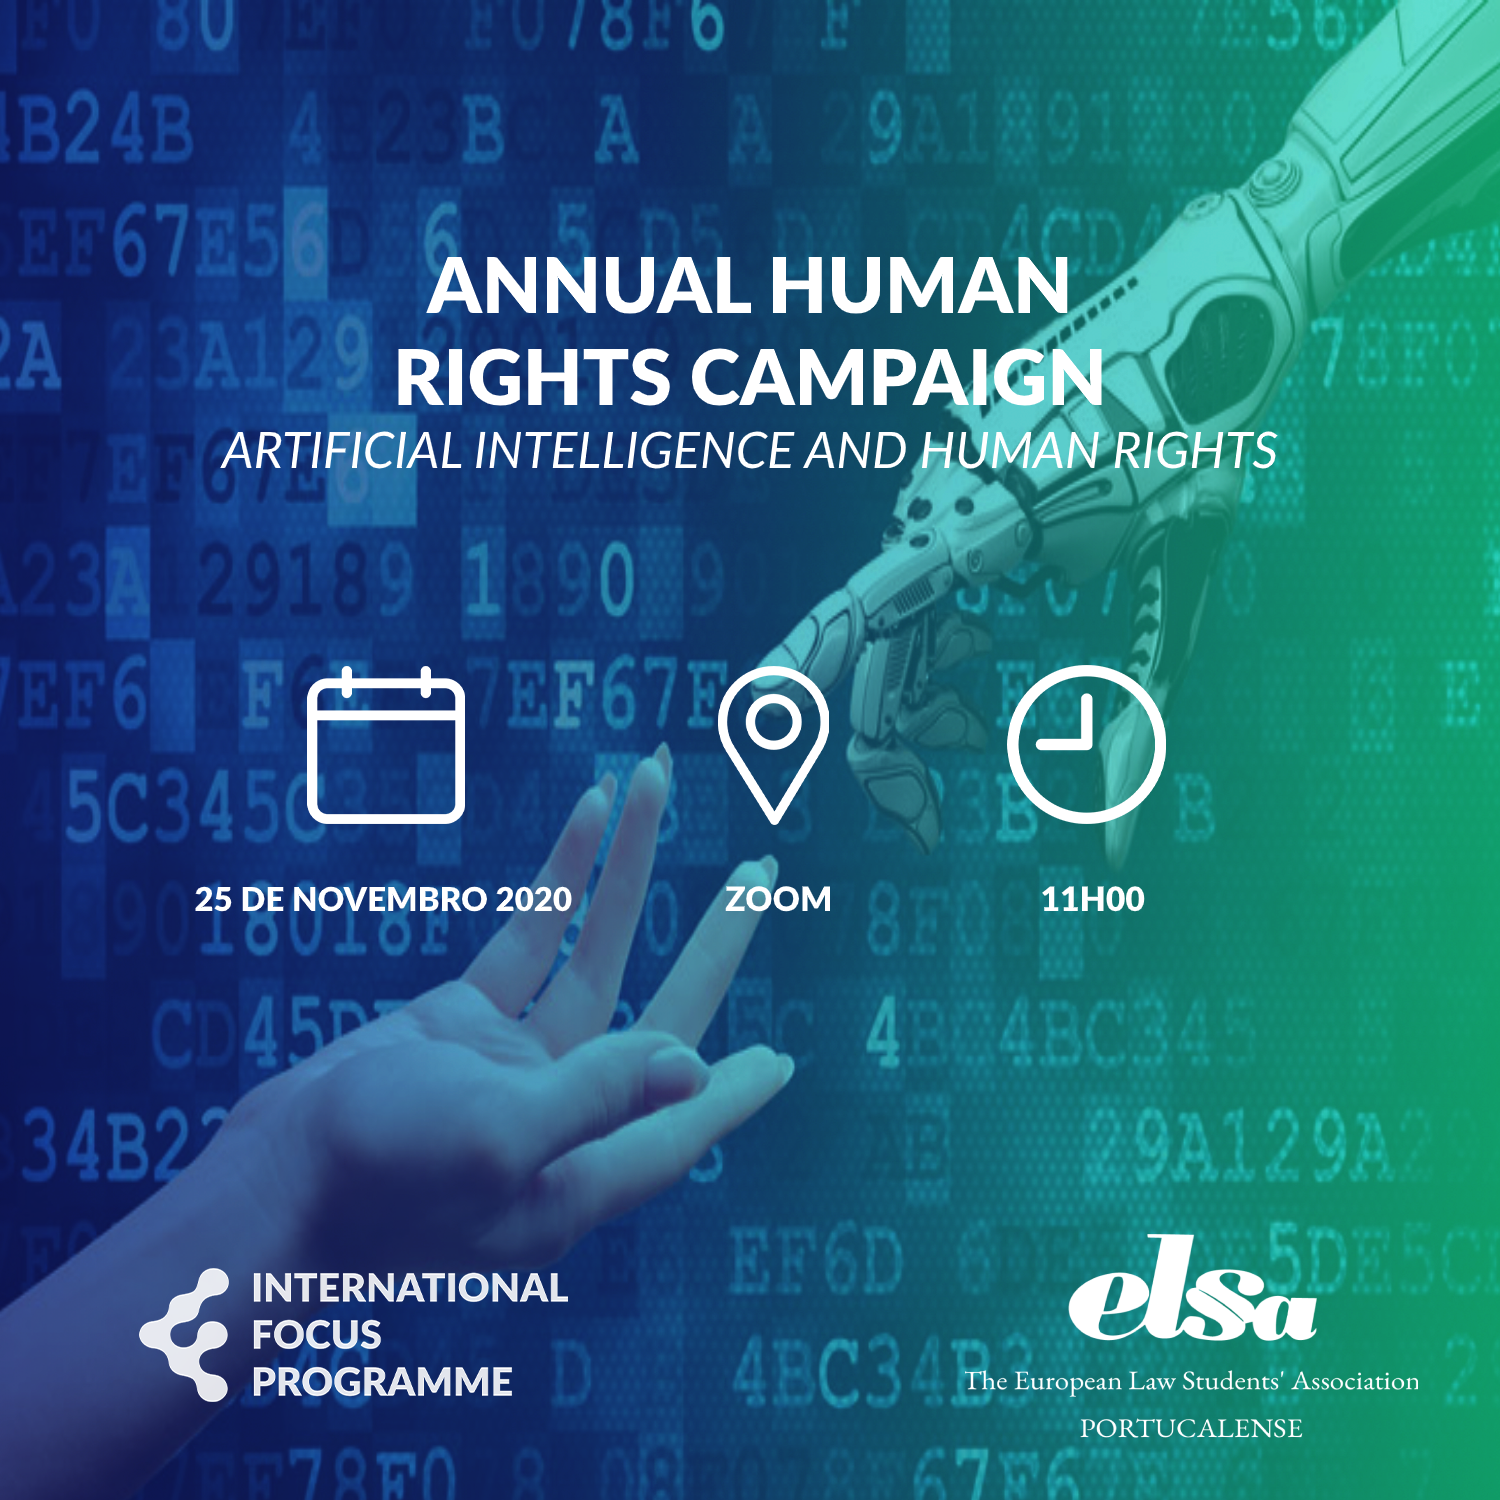 Annual Human Rights Campaign – Artificial Intelligence and Human Rights